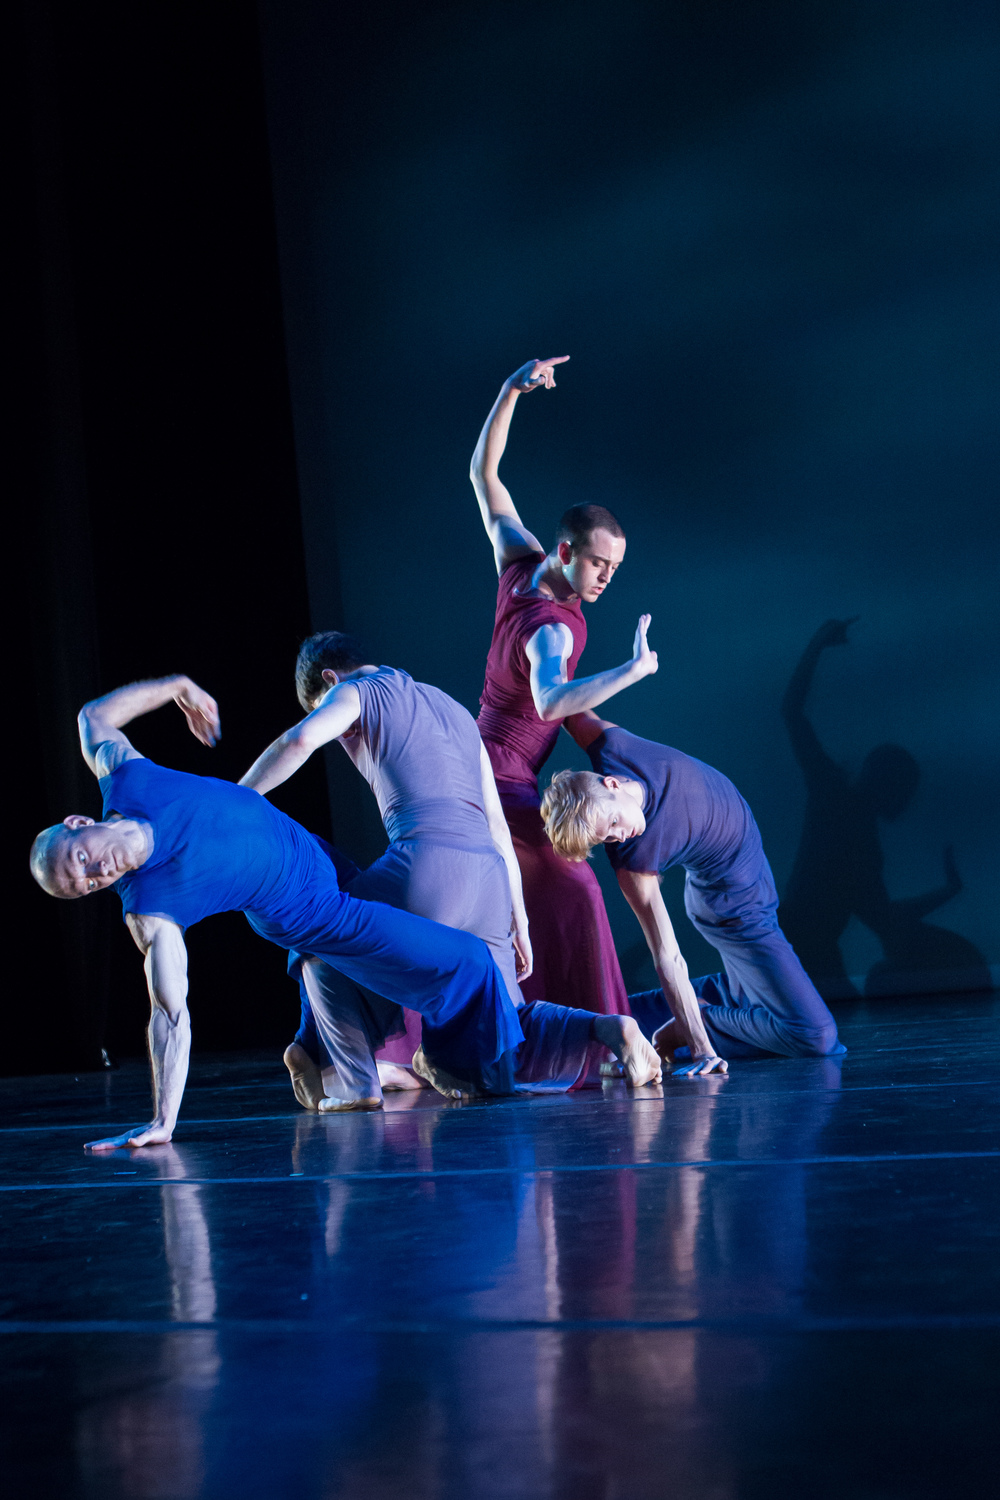 Wine Dark Sea by Wynn Fricke_photo by Steve Niedorf_Dancers Stephen Schroeder, Gregory Waletski, Tristan Koepke, Scott Mettille.jpg